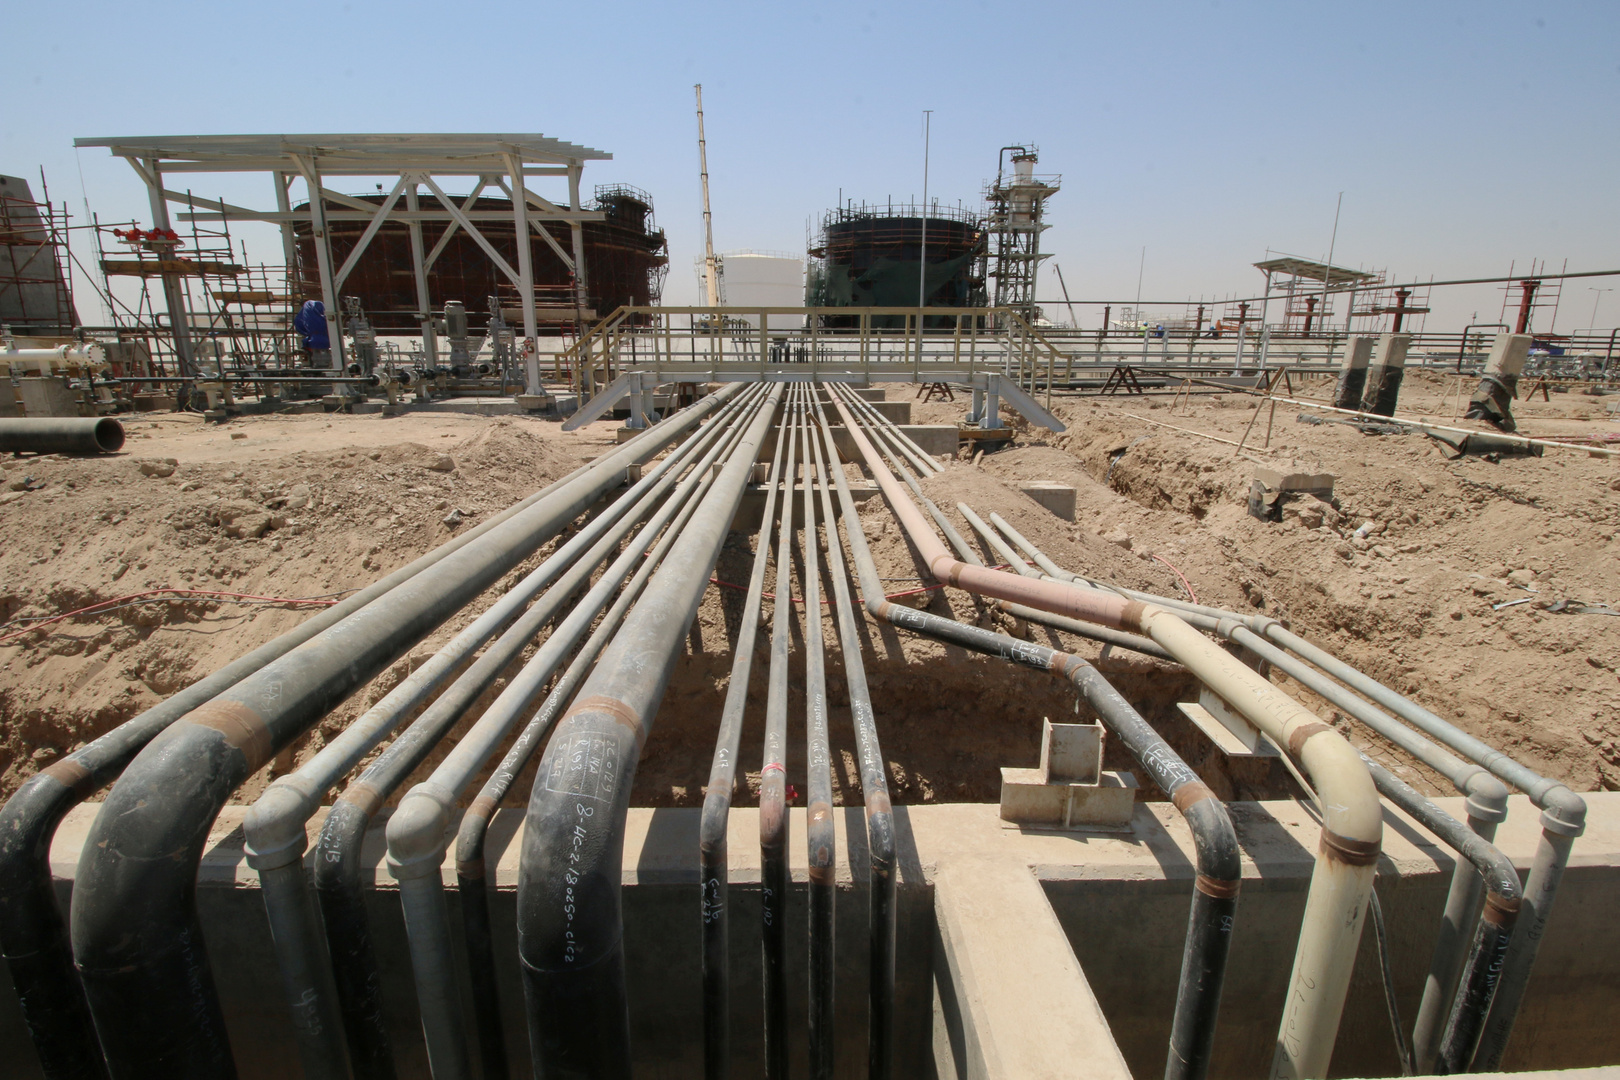 Egypt .. a new oil discovery in the Western Desert